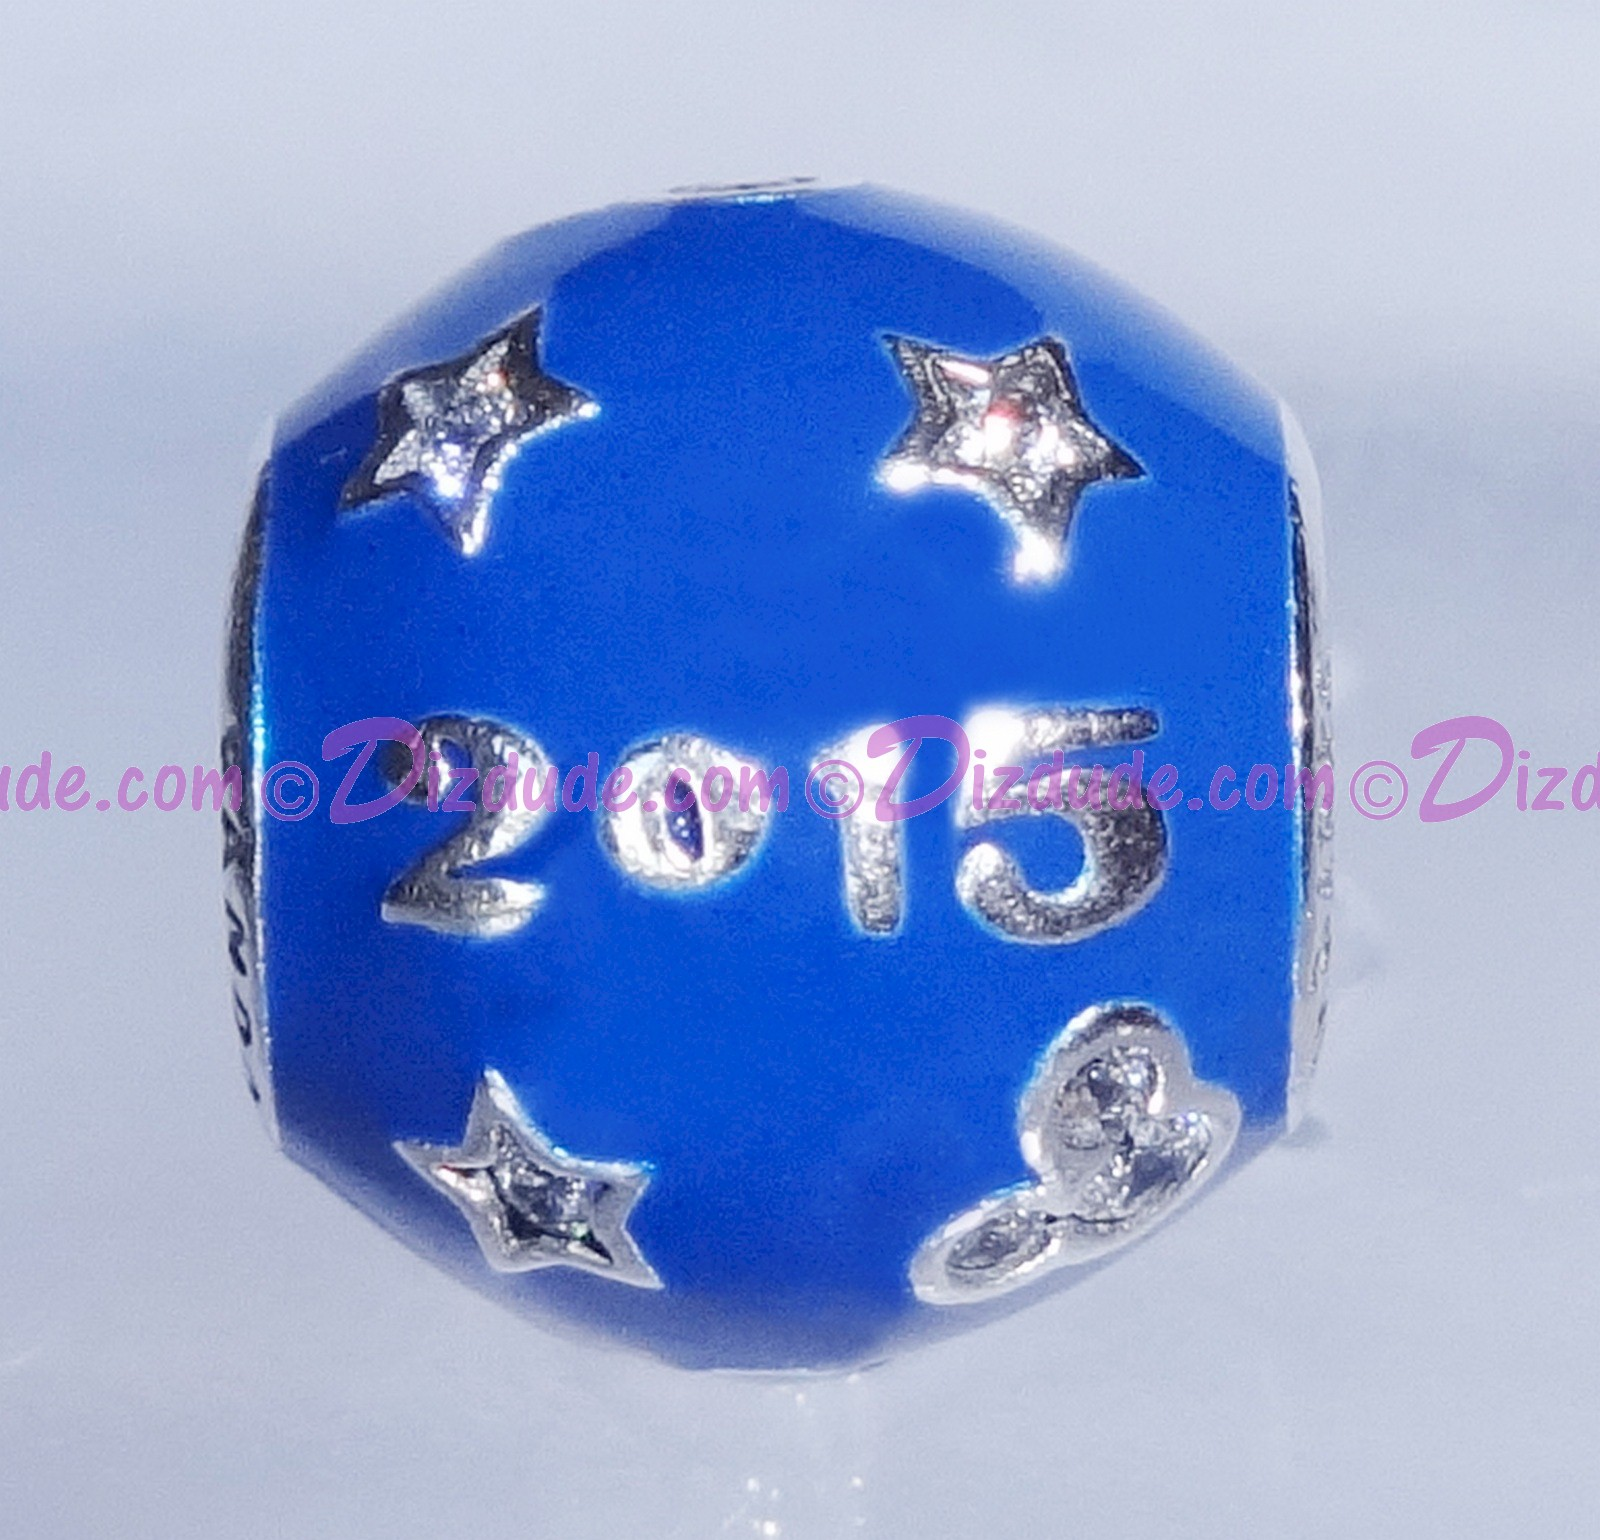 """Disney Pandora """"2015 Edition"""" Sterling Silver Charm with Cubic Zirconias"""